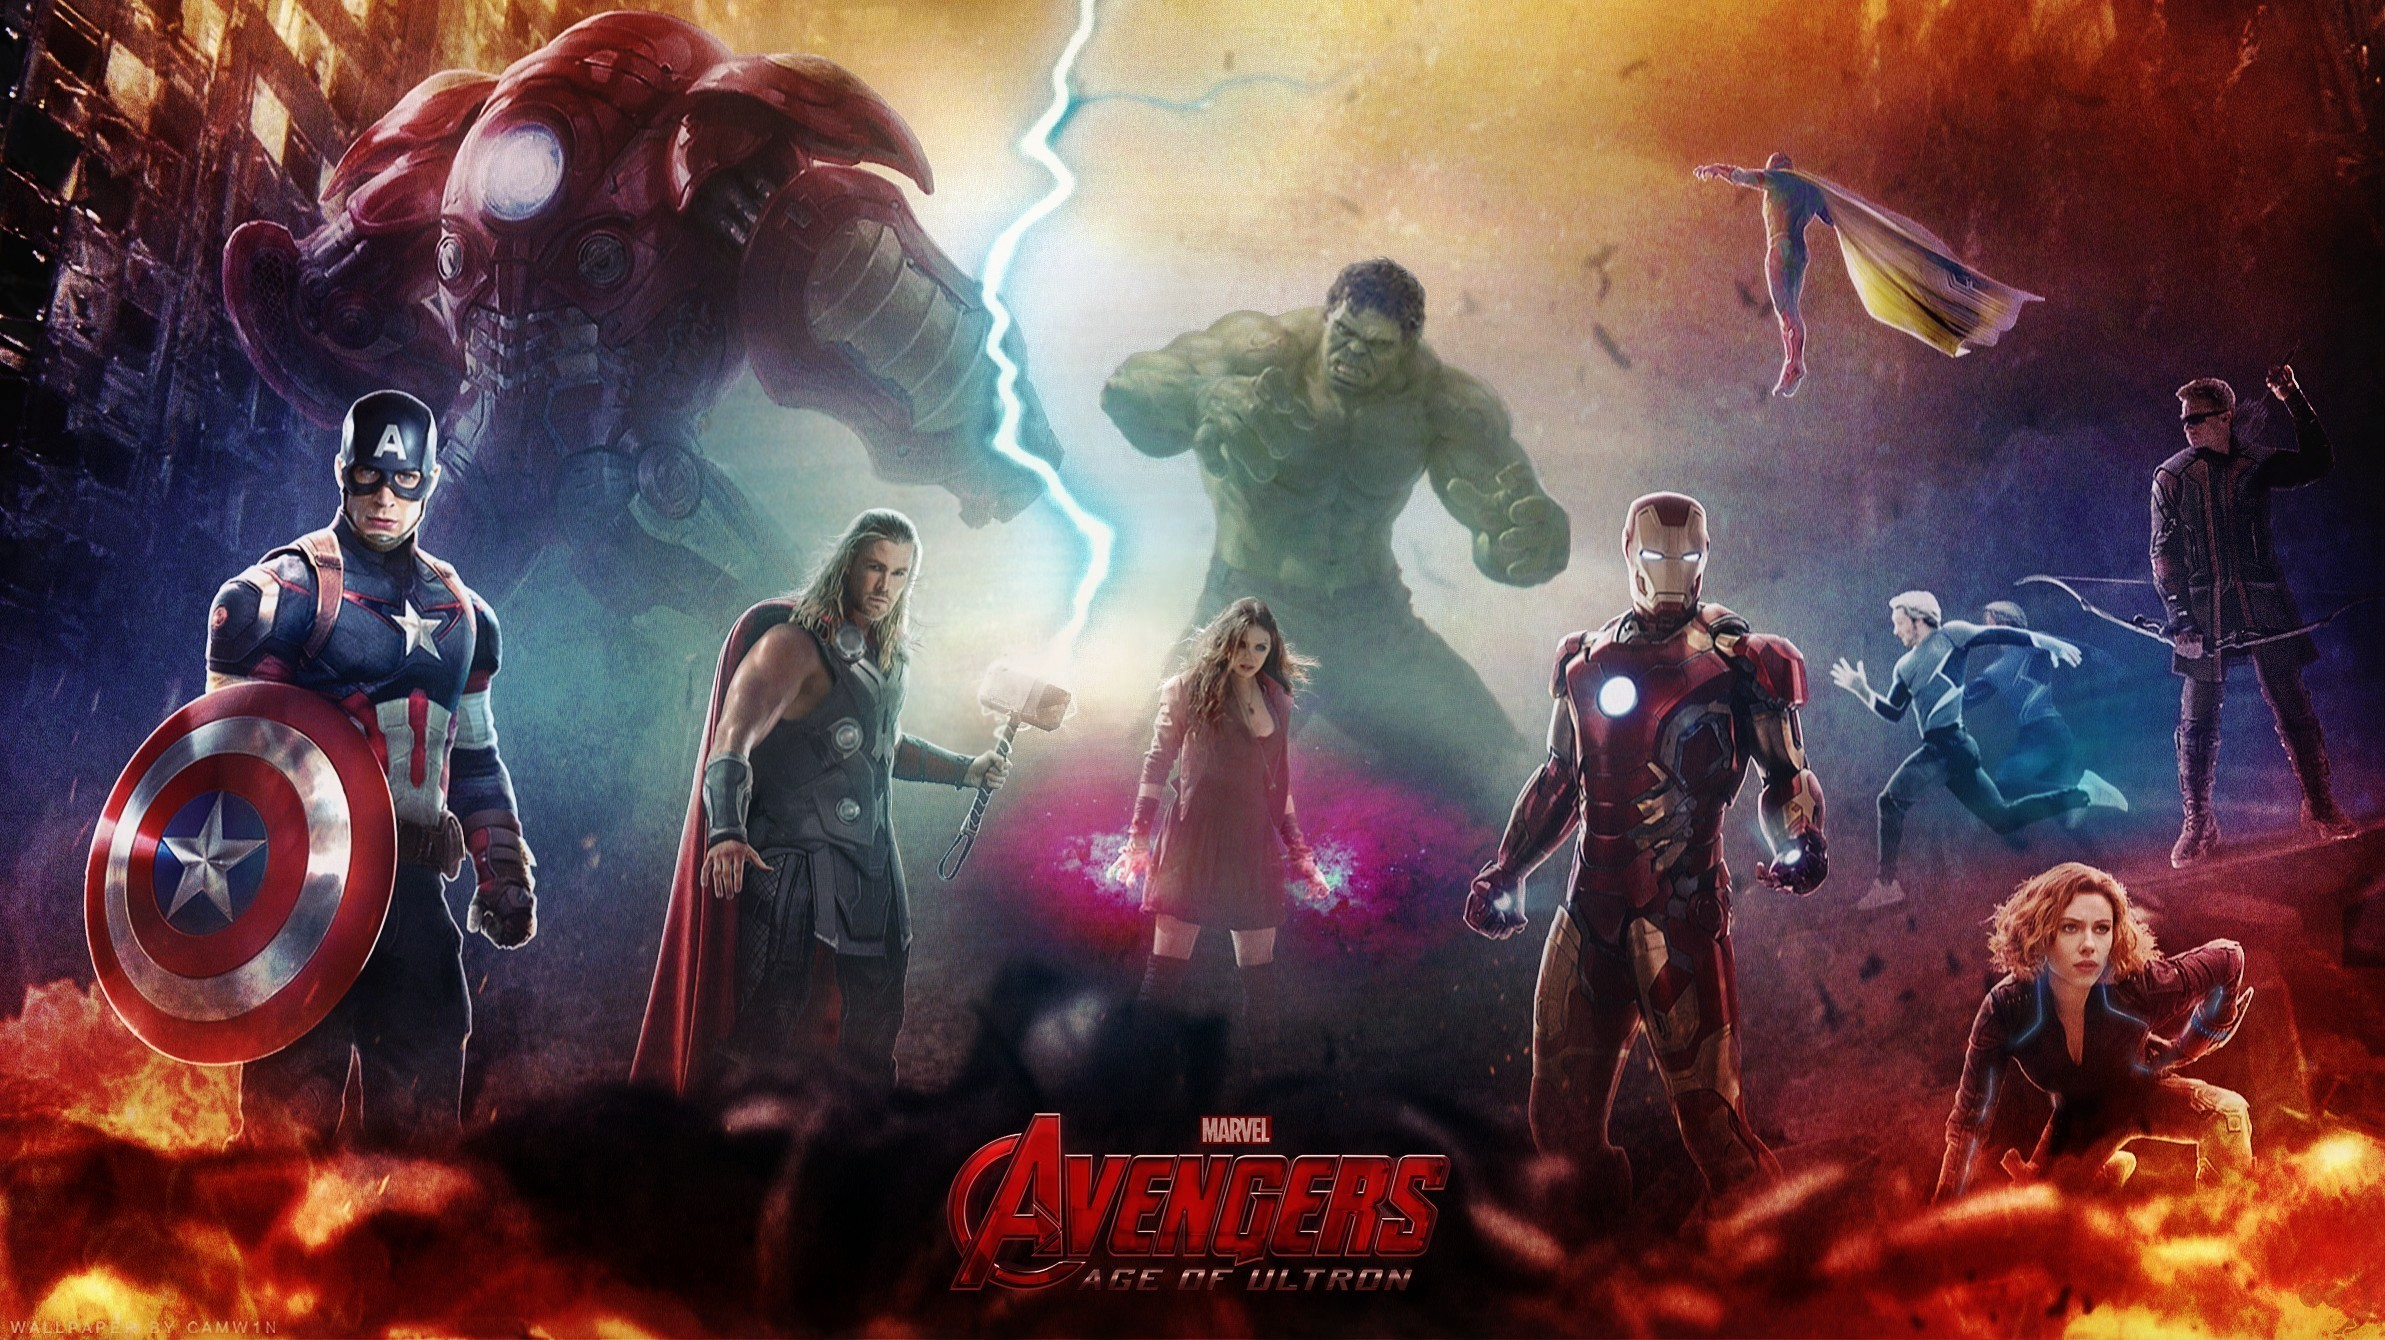 … fiction wallpaper hd avengers age of ultron wallpapers mobile at …